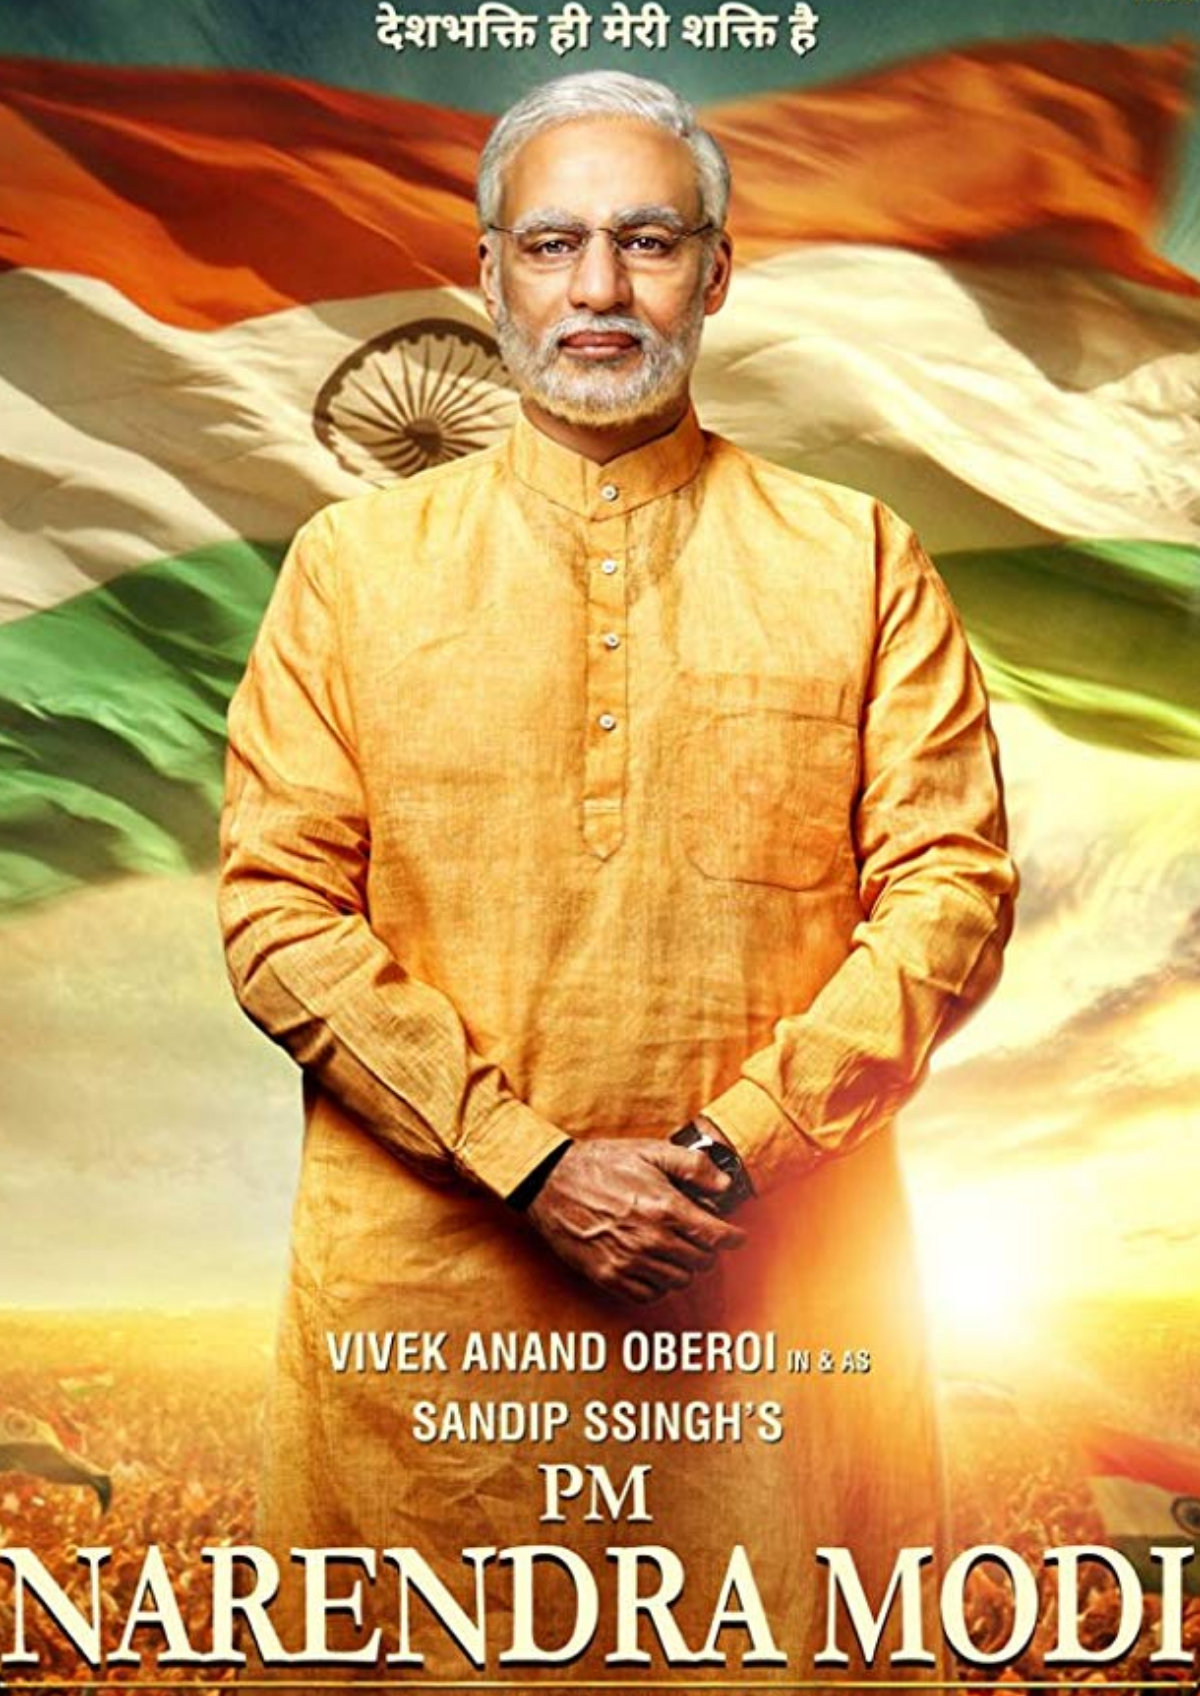 'PM Narendra Modi' movie poster